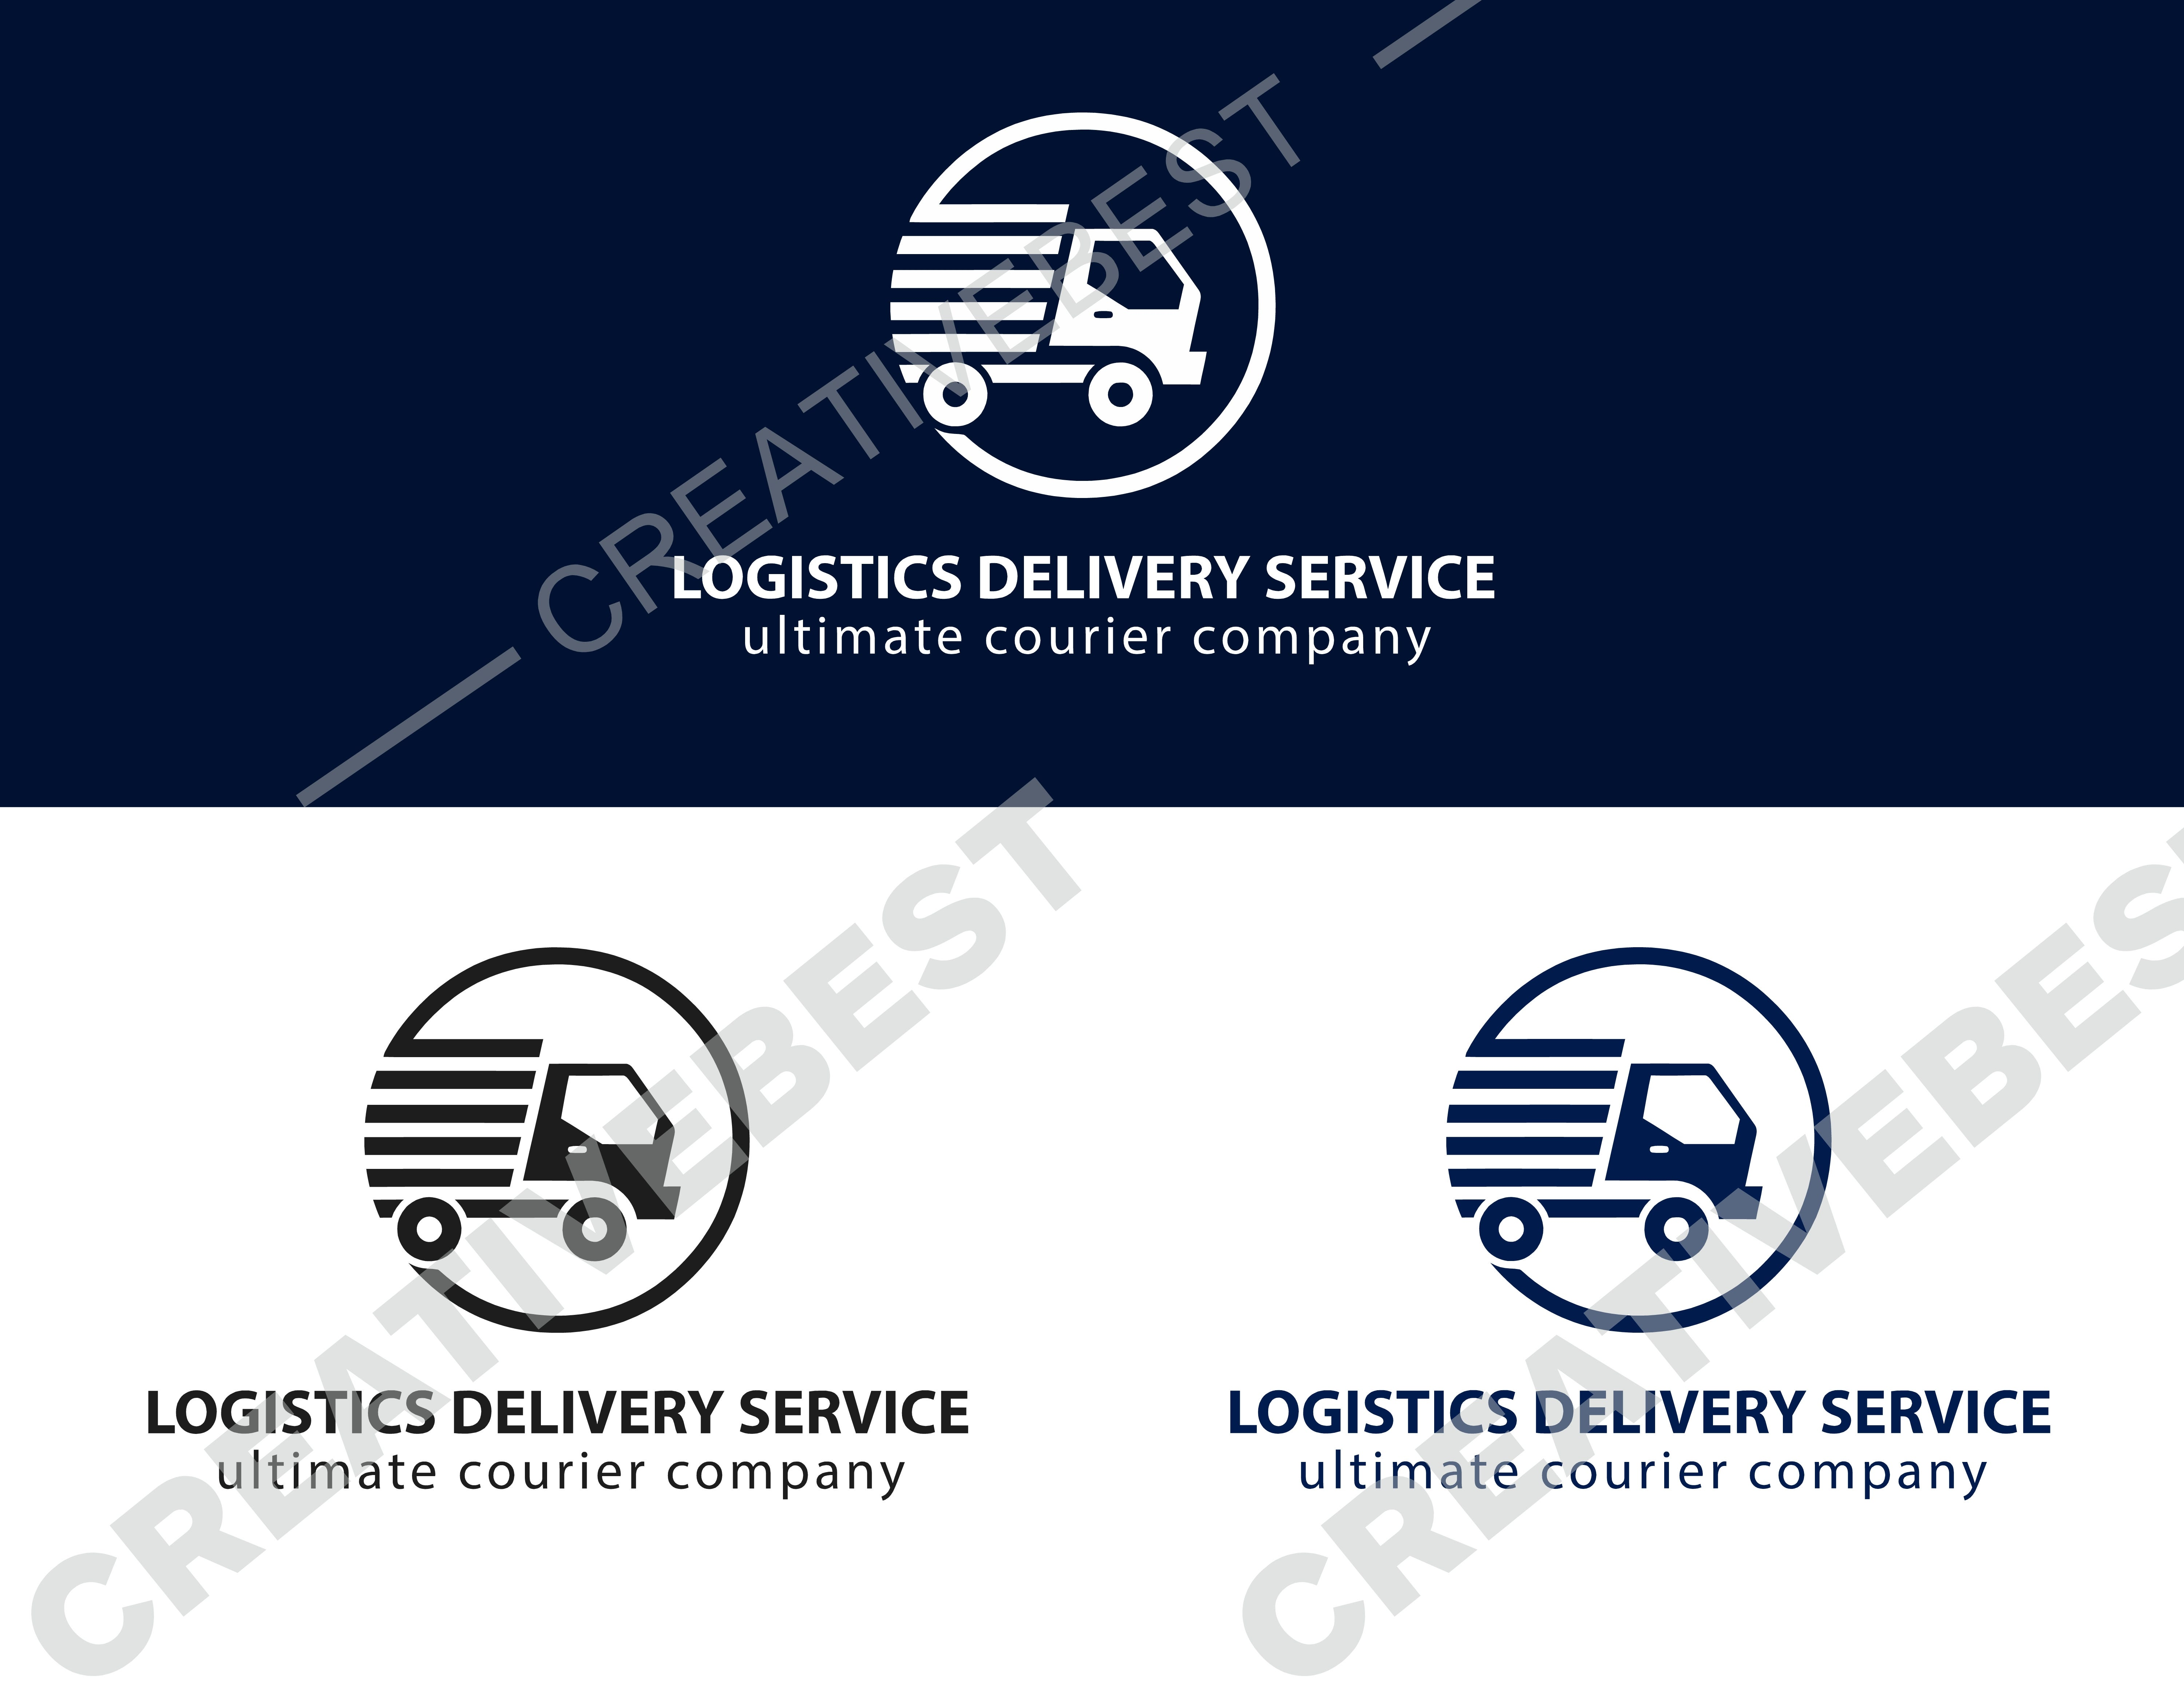 Logistics Delivery Service logo